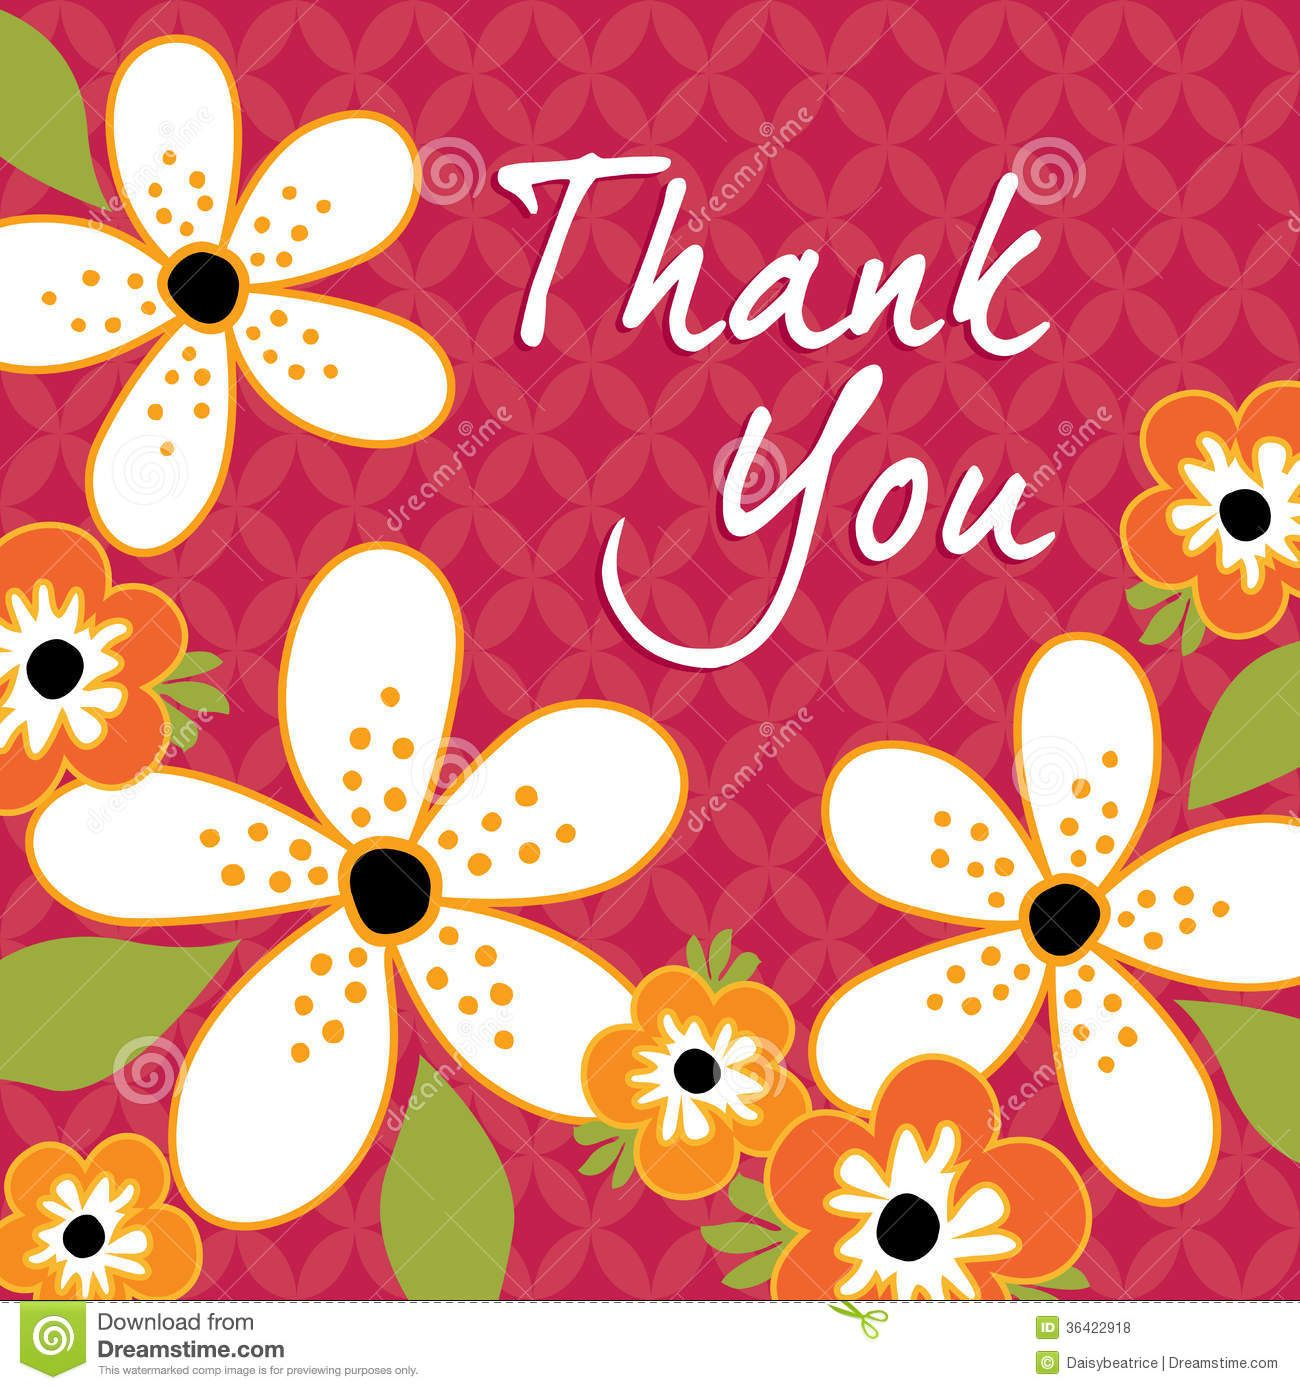 Vintage Floral Thank You Card Template Greeting Cute Retro Flowers